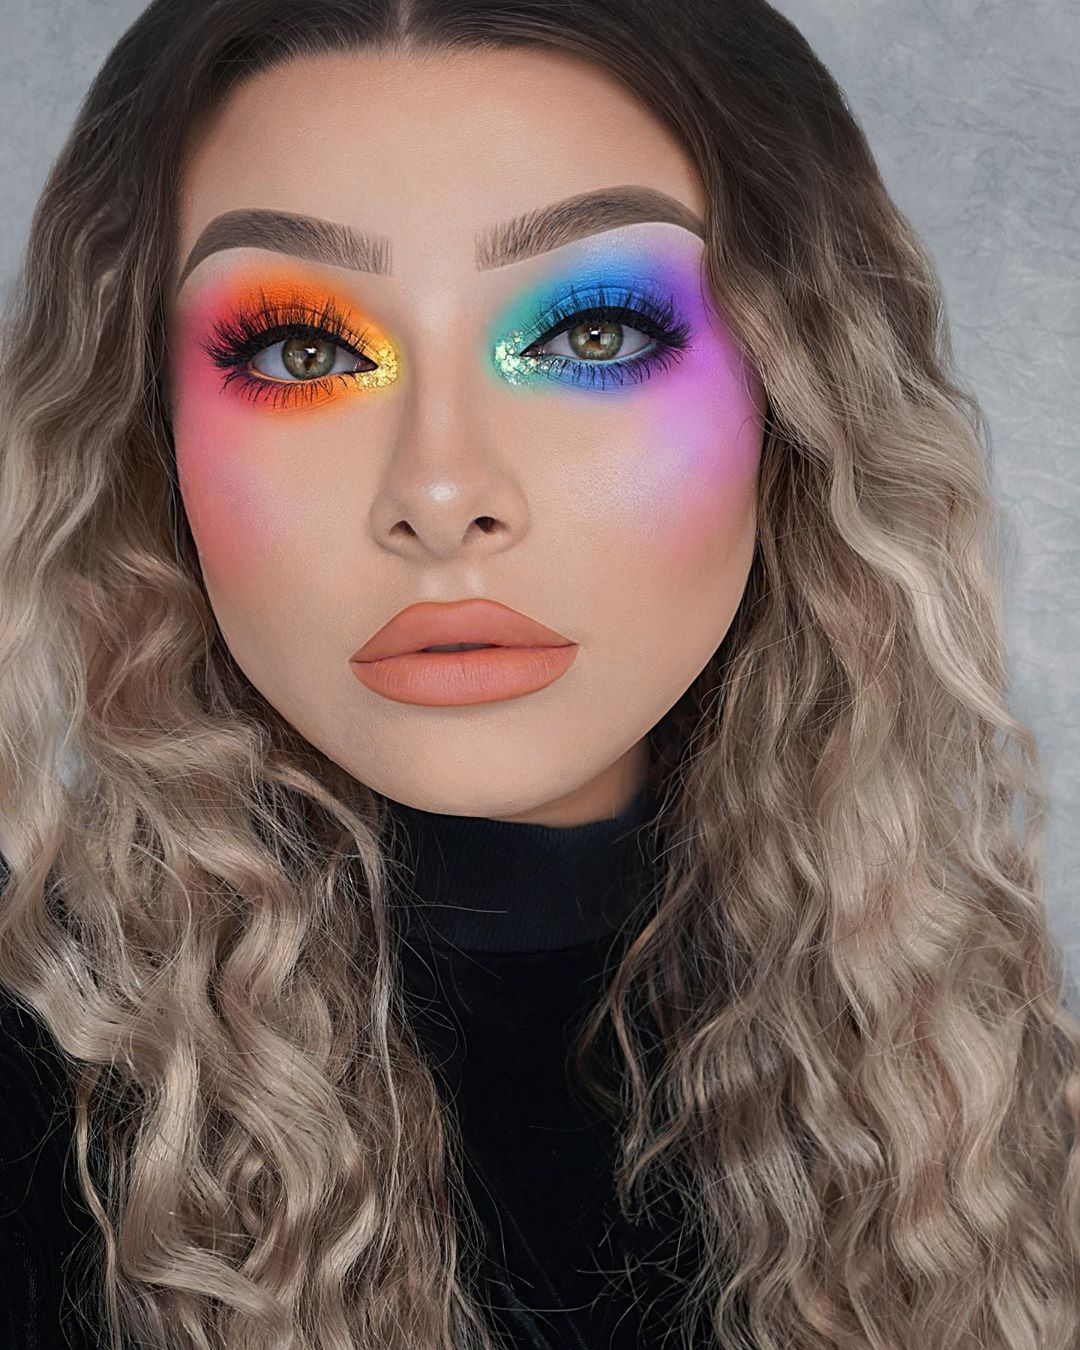 "Jessica-Rose Silicz on Instagram: ""Rainbow smokey eyes 🌈 #Pride #LoveIsLove 🌈❤️ Inspired by the amazing @Mianjelica 👑😍 • • Makeup details: 🧡 Orange eye -…"""